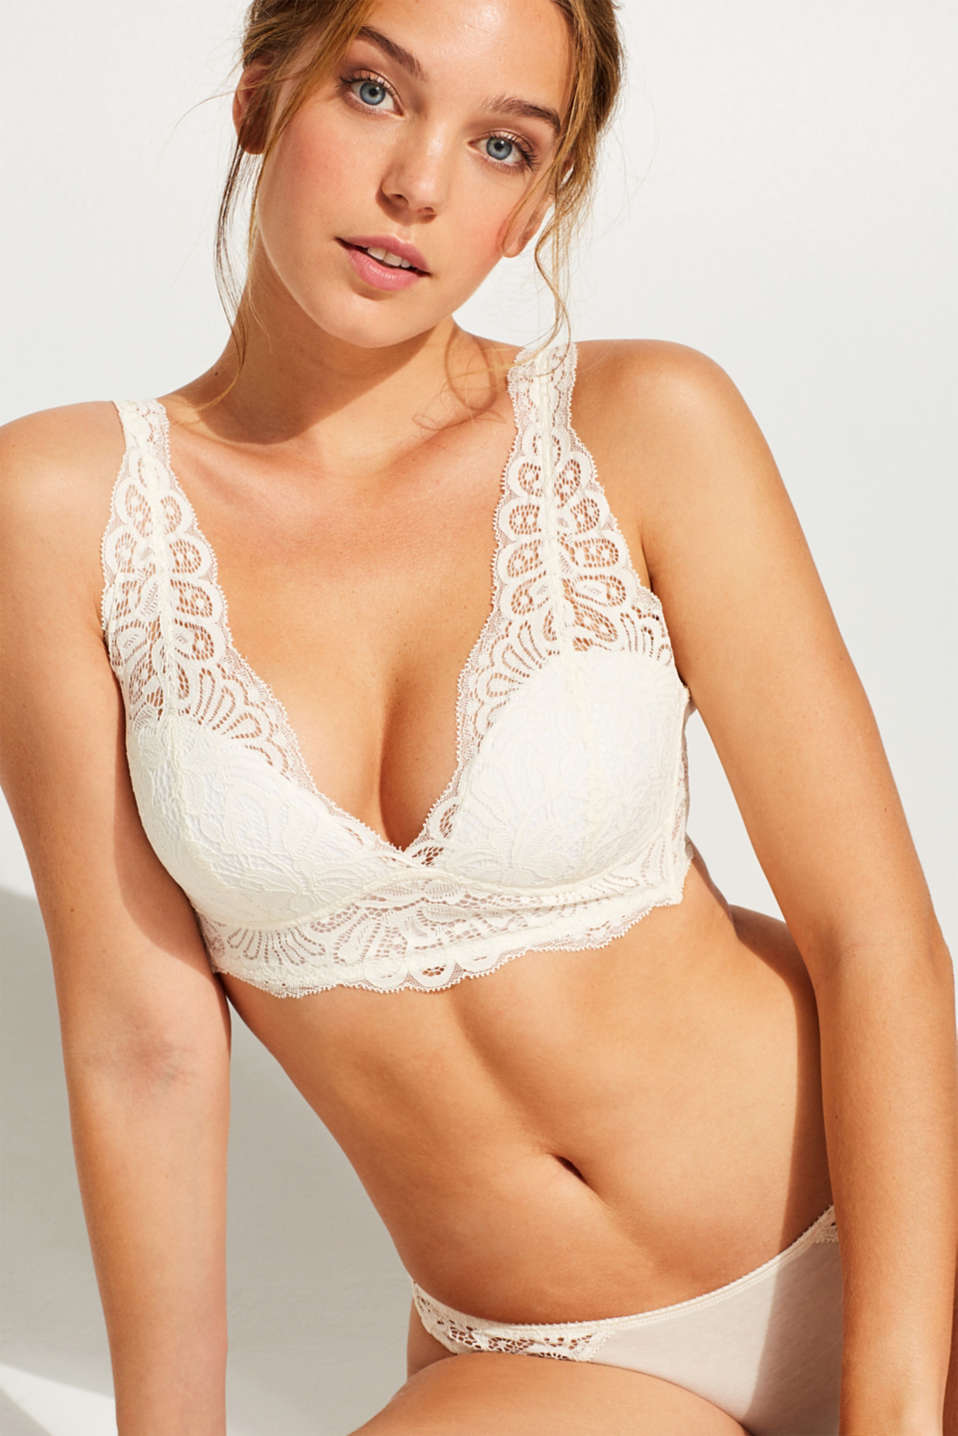 Esprit - Padded, wireless bra in crocheted lace